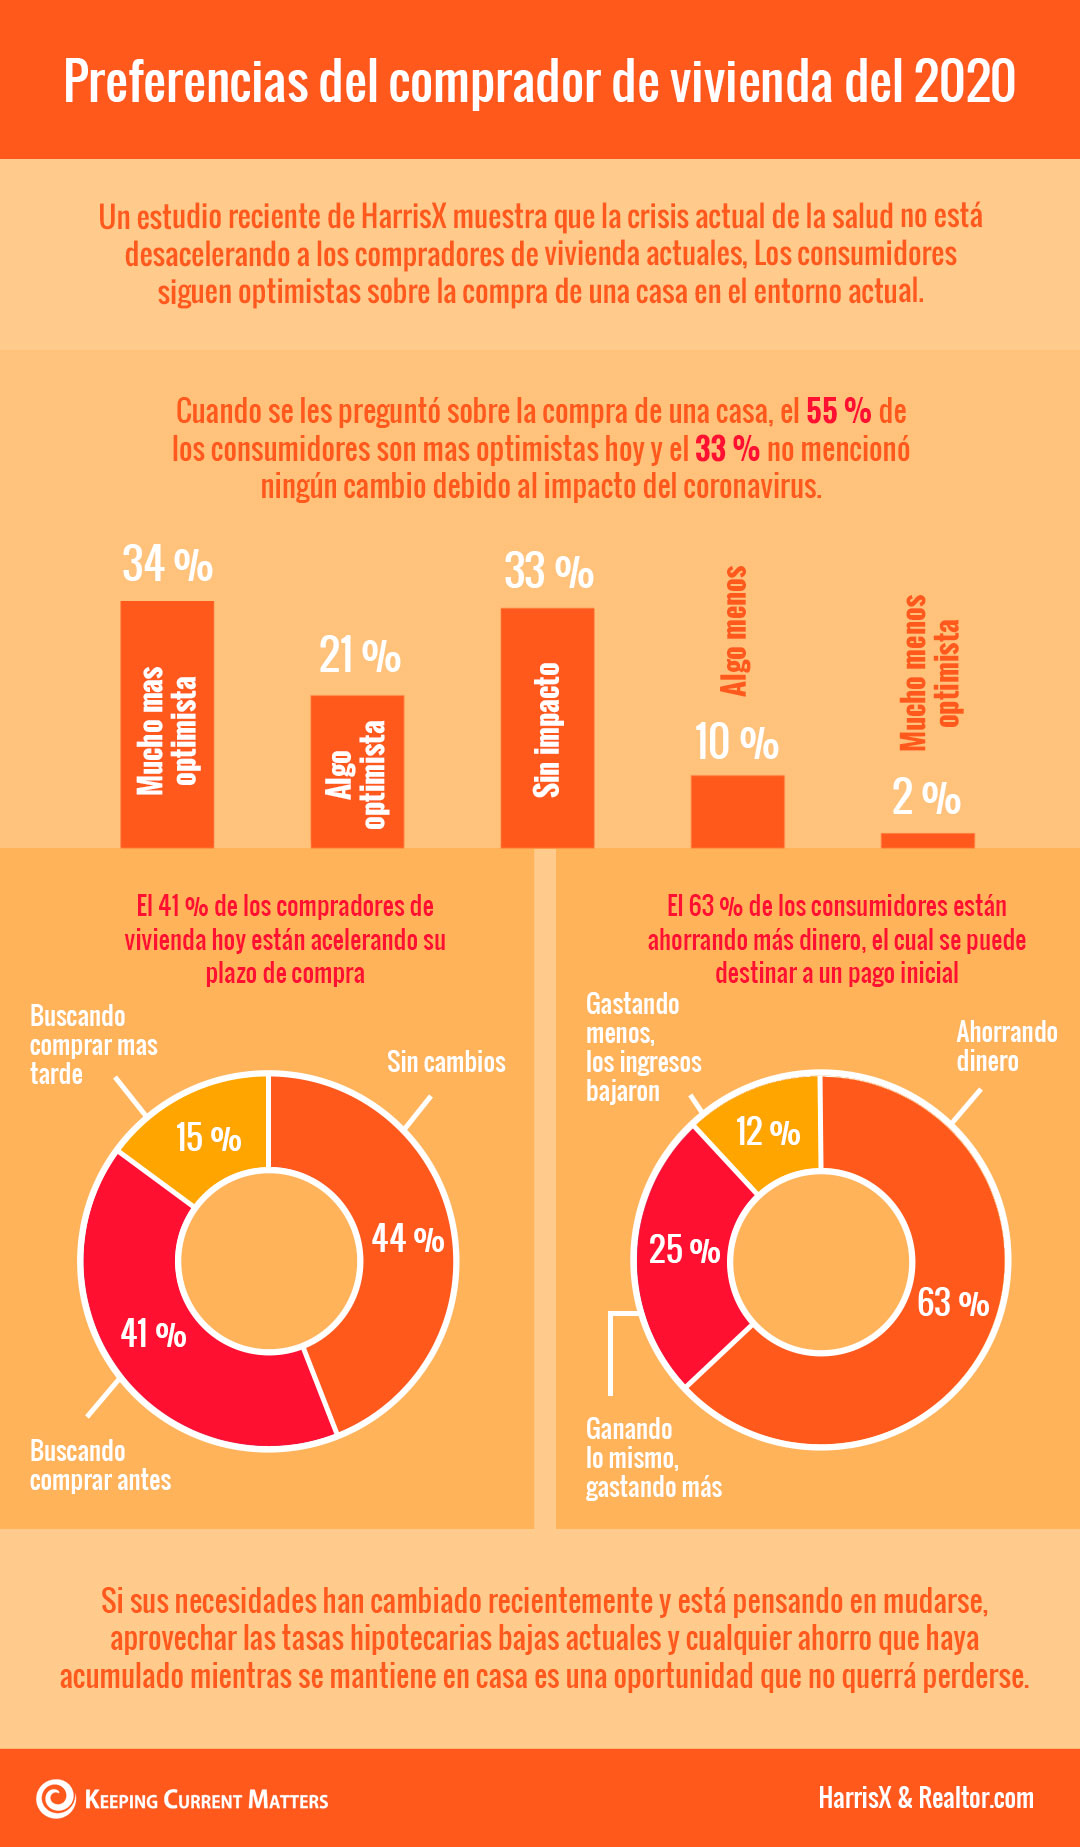 Preferencias del comprador de vivienda del 2020 [Infografía] | Keeping Current Matters